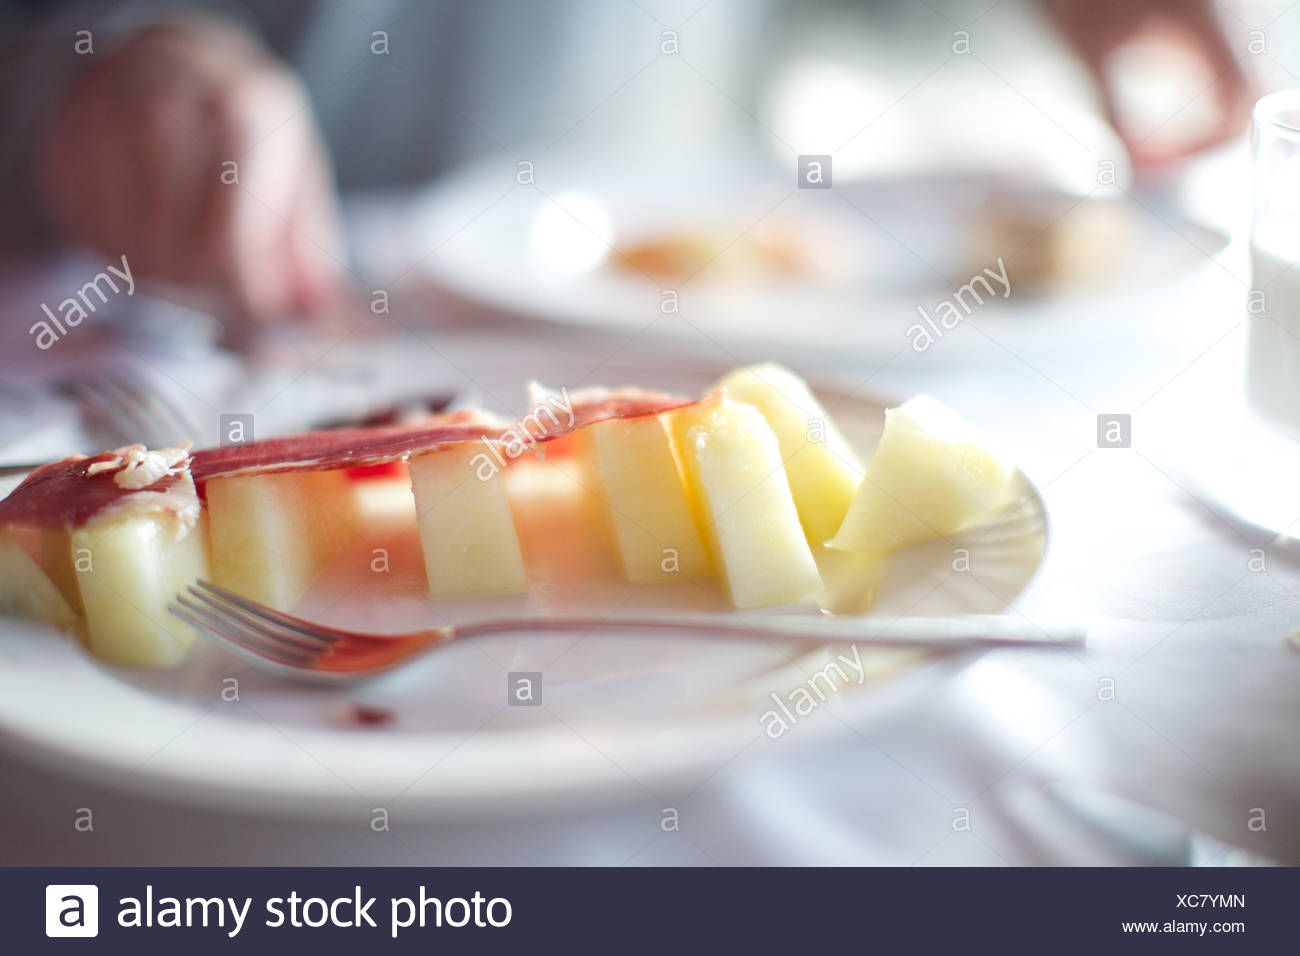 bacon with apple slice on plate. food, restaurant, fork, indulgence. - Stock Image